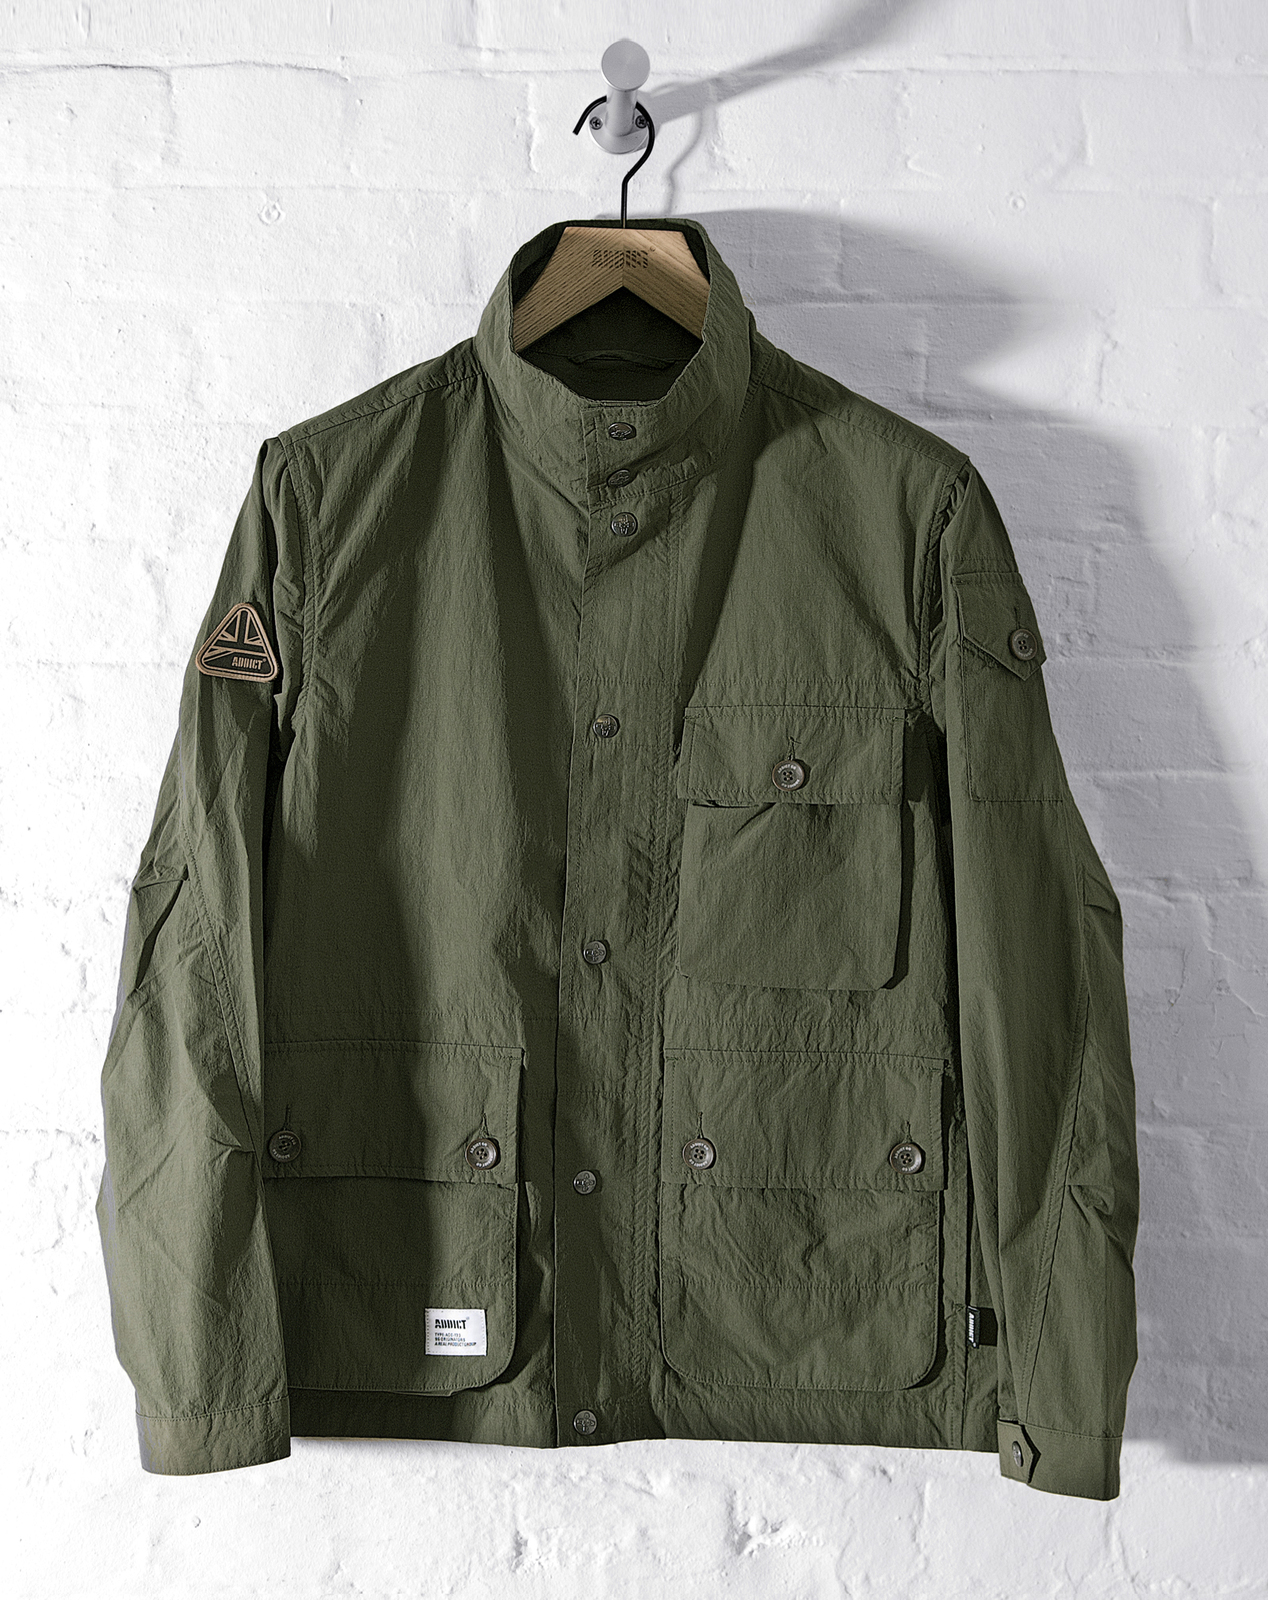 Mens jacket cotton - Image Is Loading Addict Mens Field Buttoned Jacket Funnel Neck Cotton